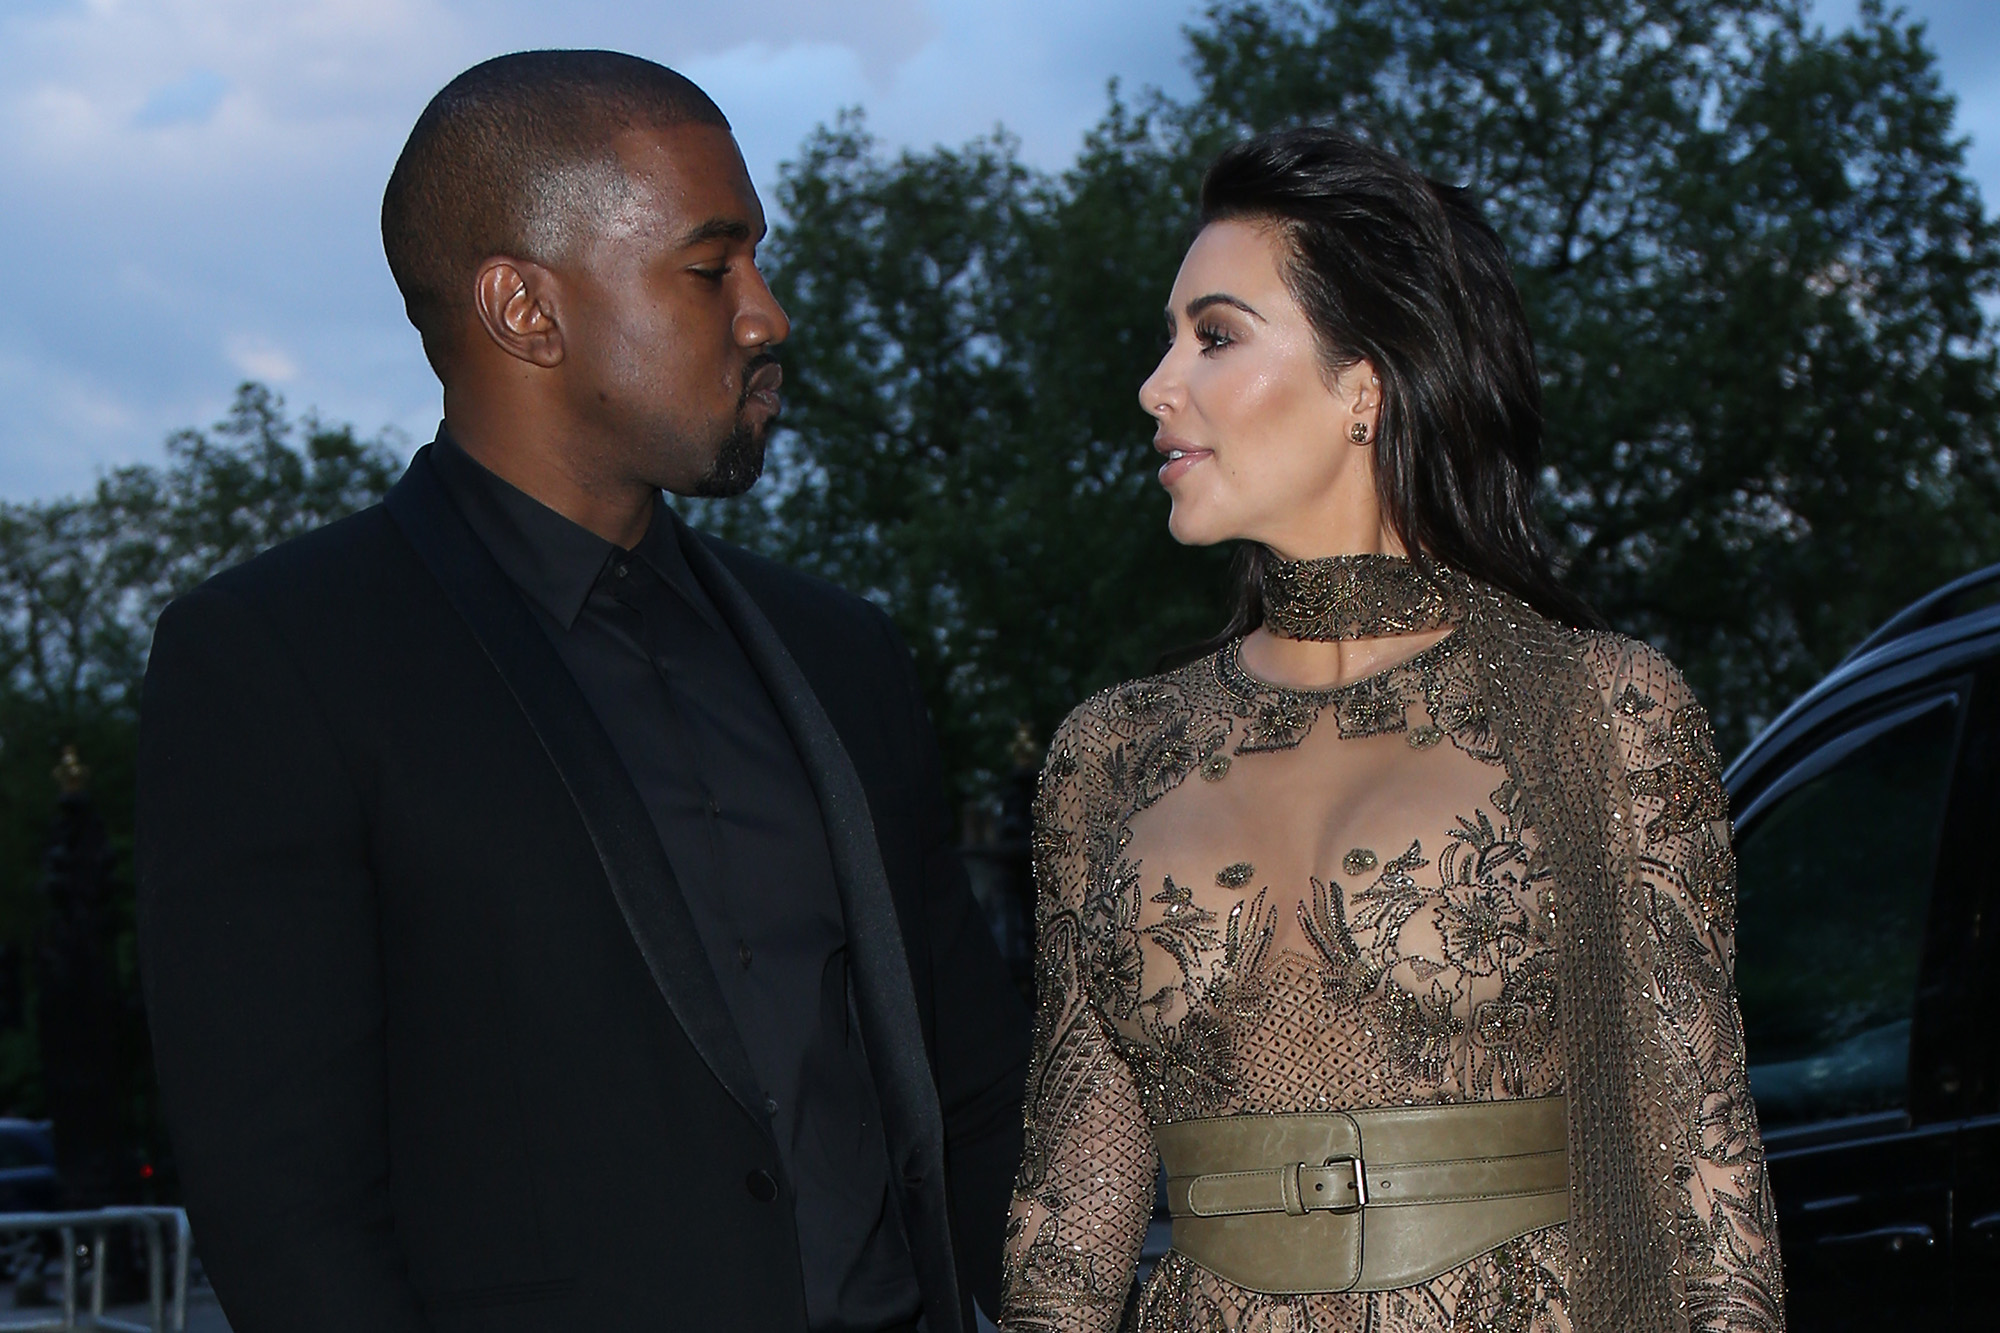 Kim Kardashian West and Kanye West attend the Vogue 100 Gala Dinner at the East Albert Lawn in Kensington Gardens on May 23, 2016 in London, England.  (Photo by Neil Mockford/GC Images)